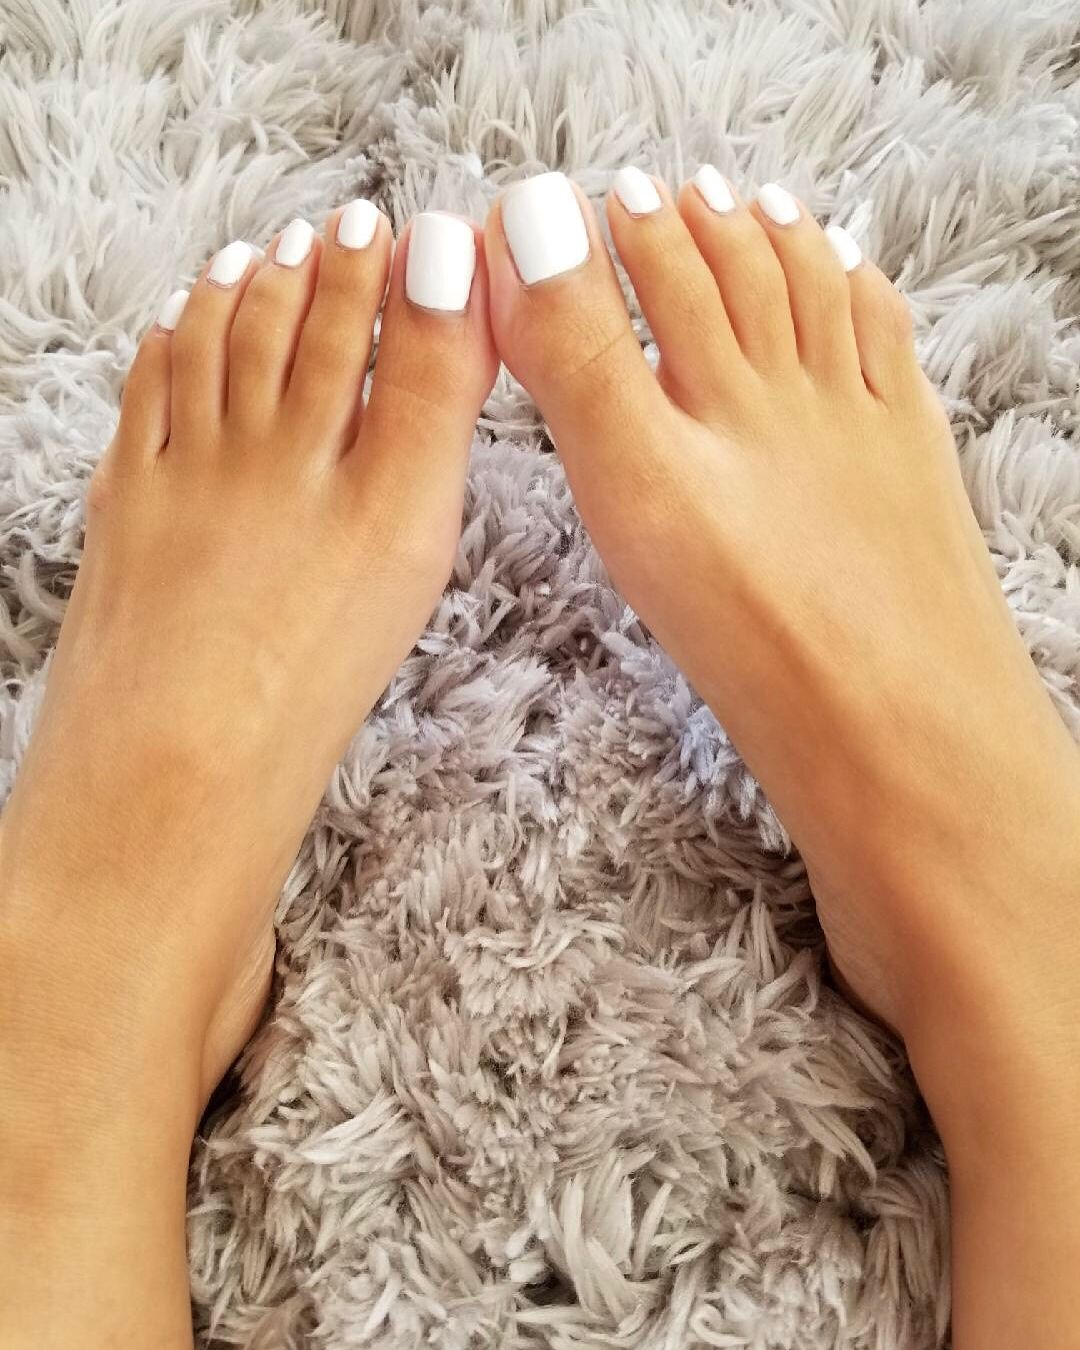 White Toes Are The Right Toes White Toes White Toe Nail Polish Toe Nails White